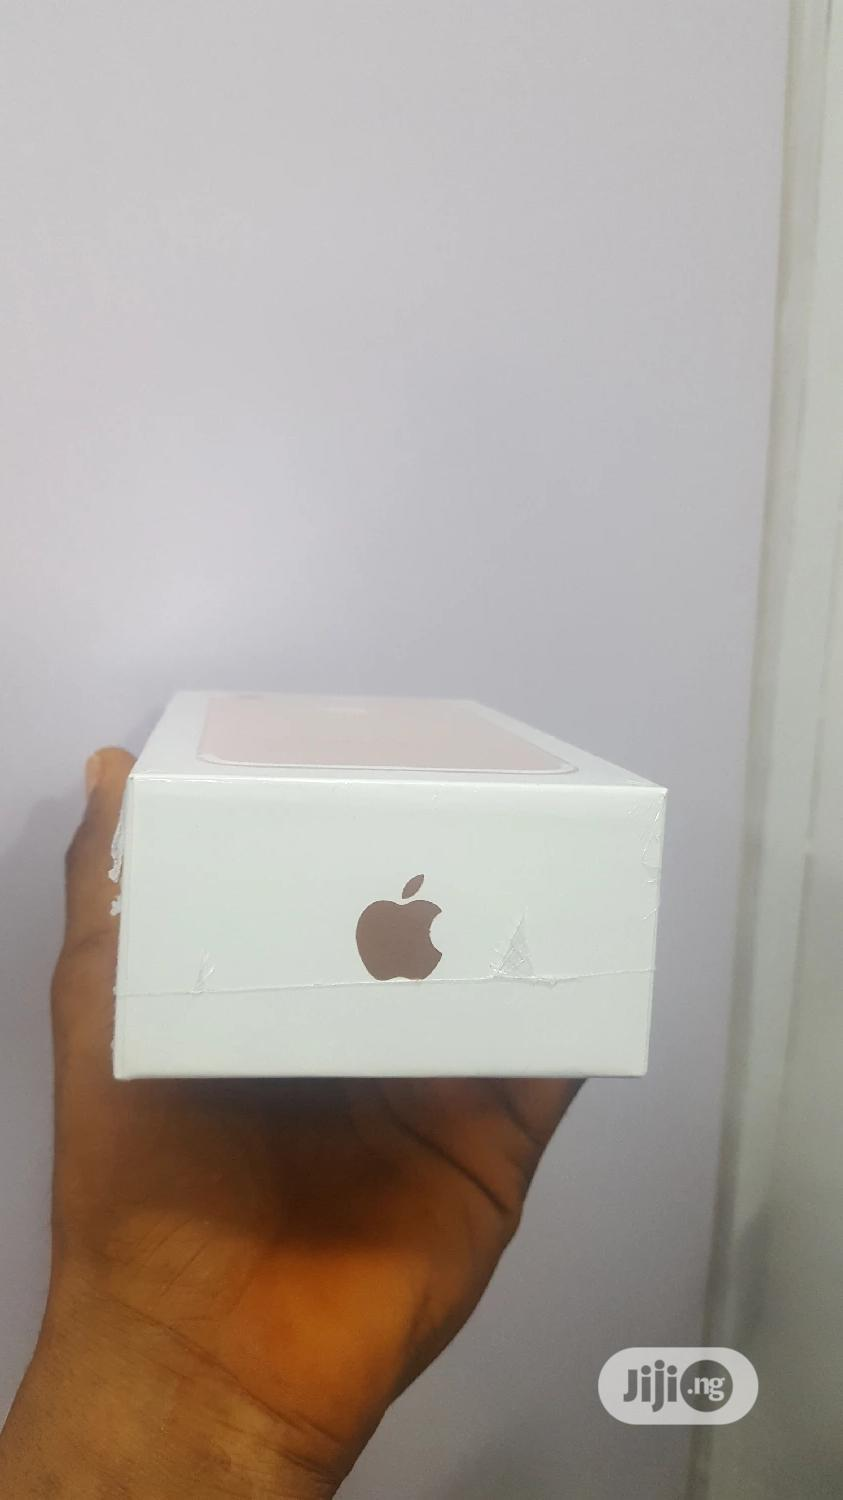 New Apple iPhone 7 32 GB Gold   Mobile Phones for sale in Ikeja, Lagos State, Nigeria